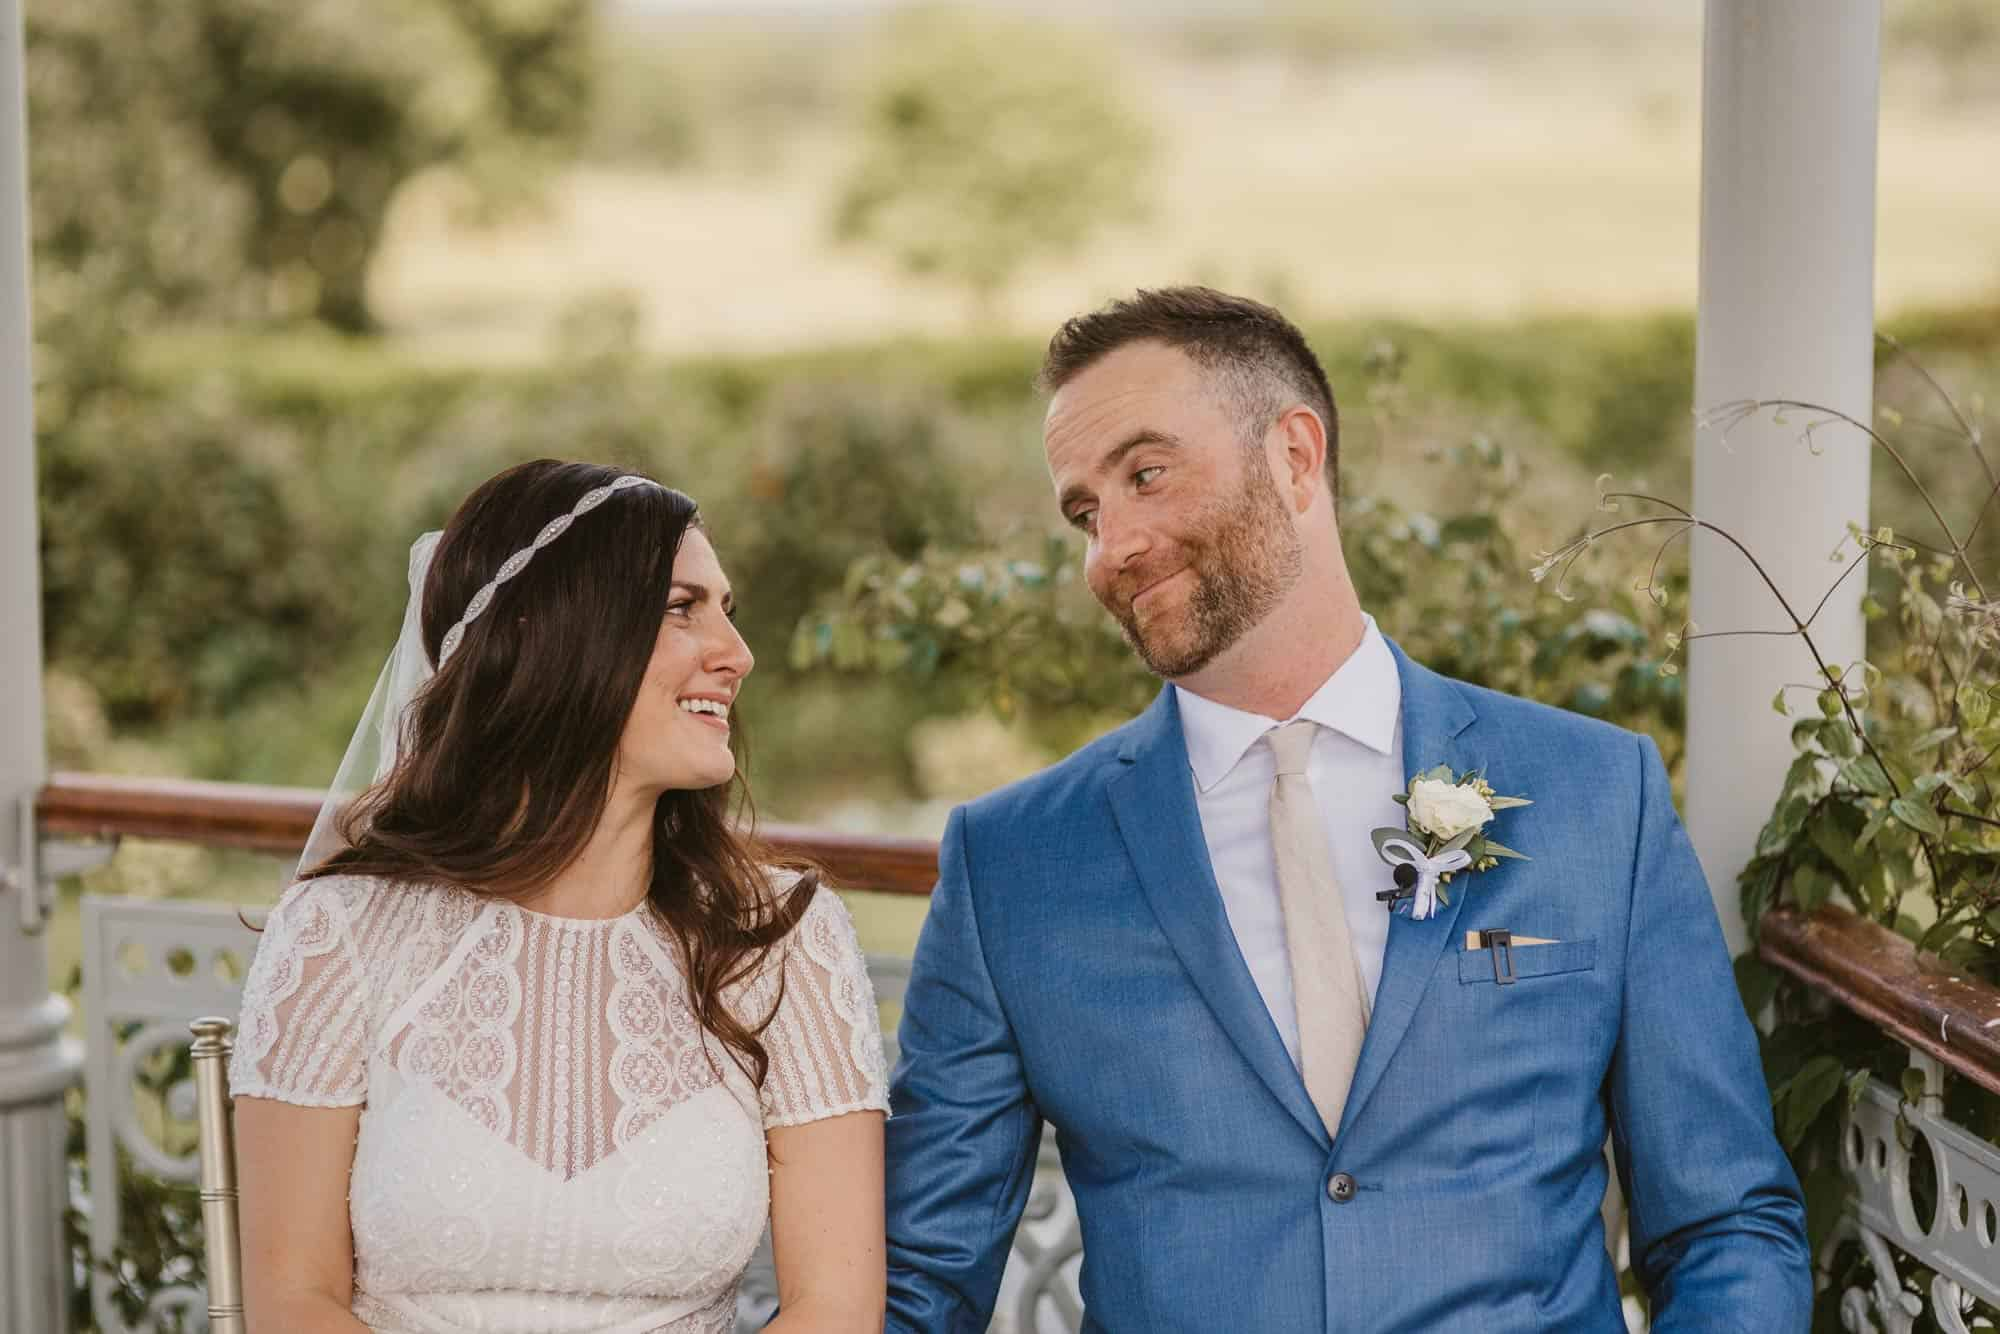 Elopement videographer Ireland, couple smiling at each other